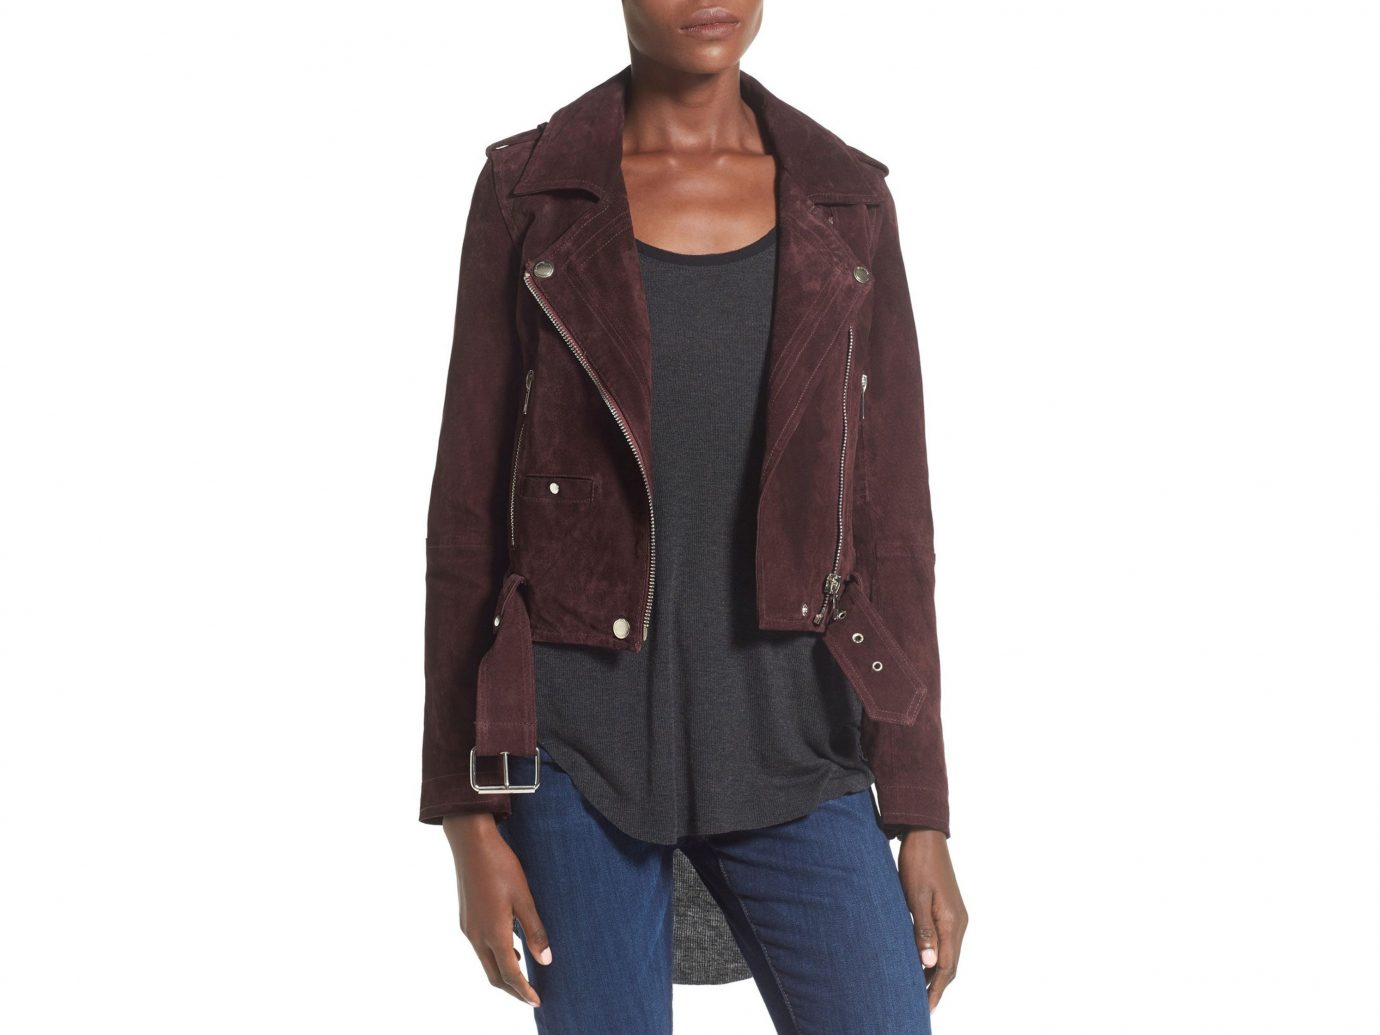 Style + Design person clothing jacket posing leather wearing outerwear suit blazer textile leather jacket sleeve material